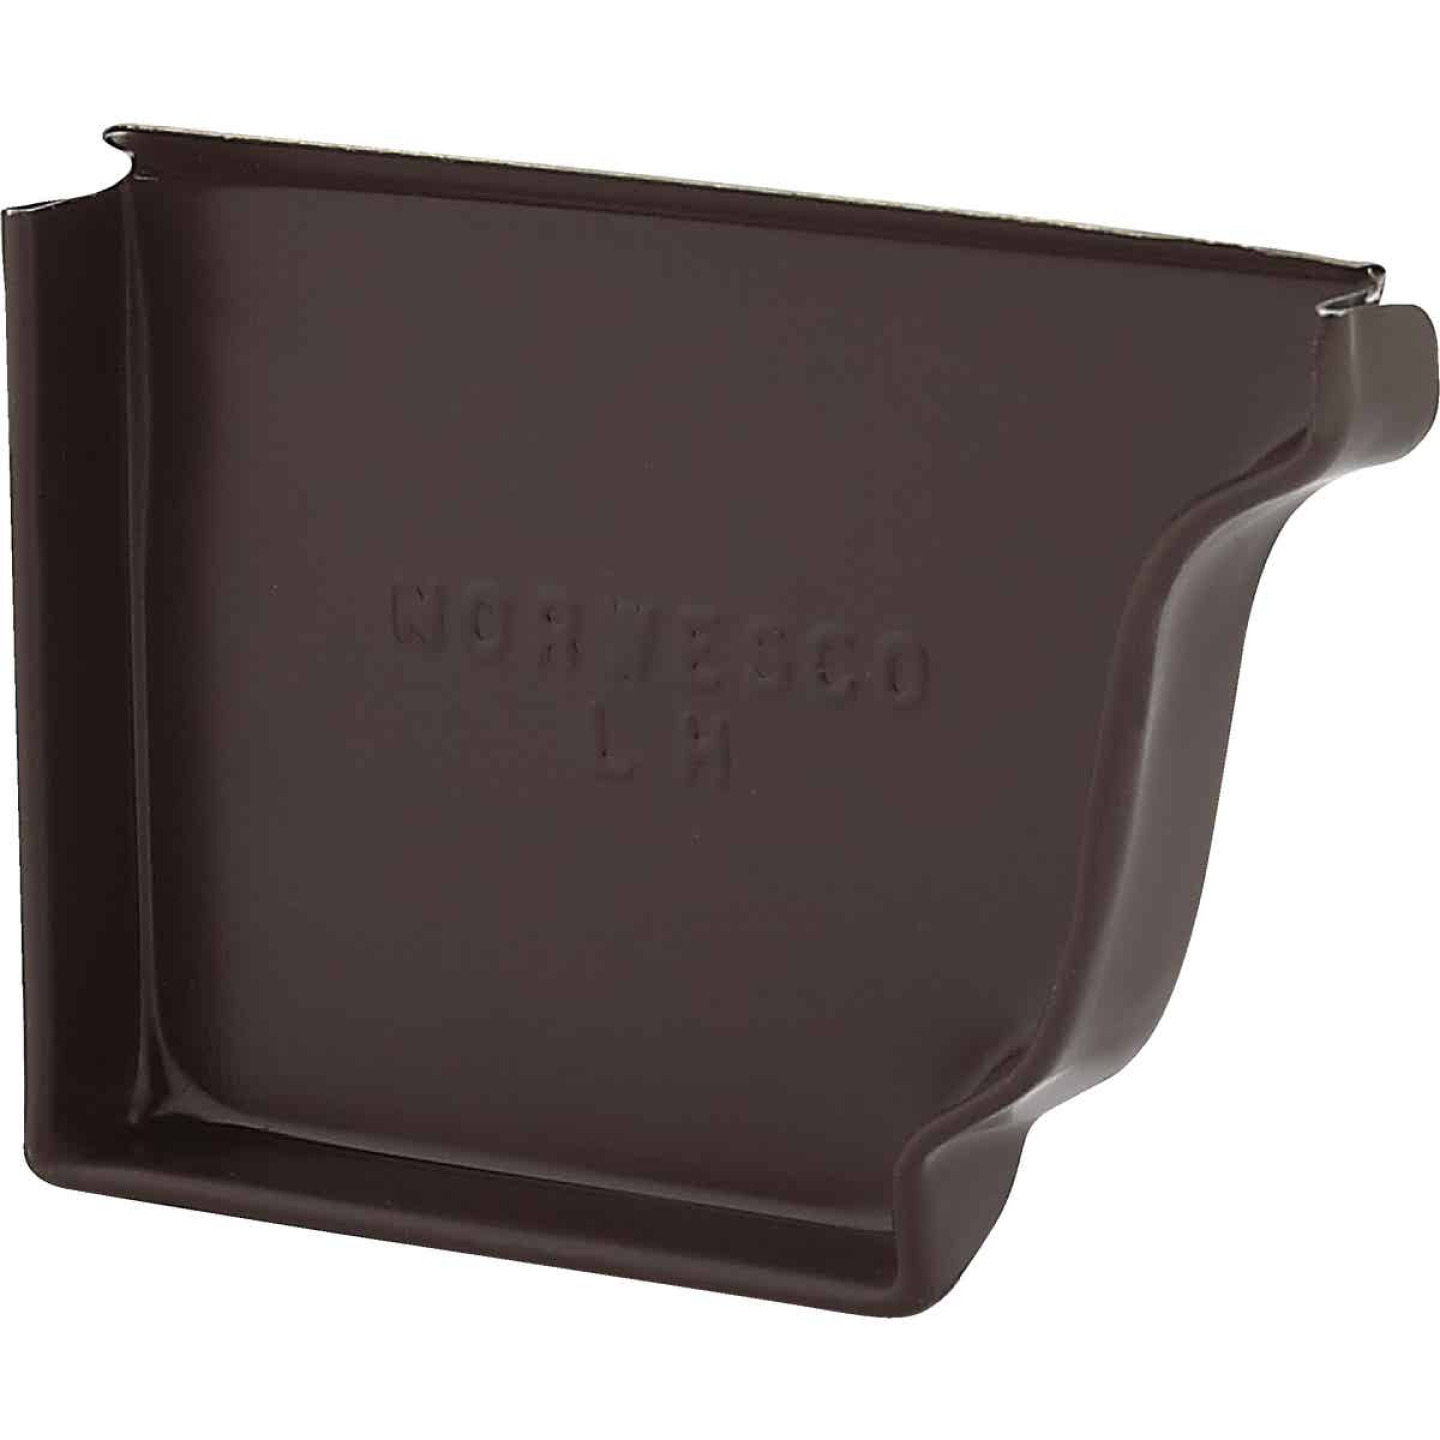 NorWesco 4 In. Galvanized Brown Left Gutter End Cap Image 1